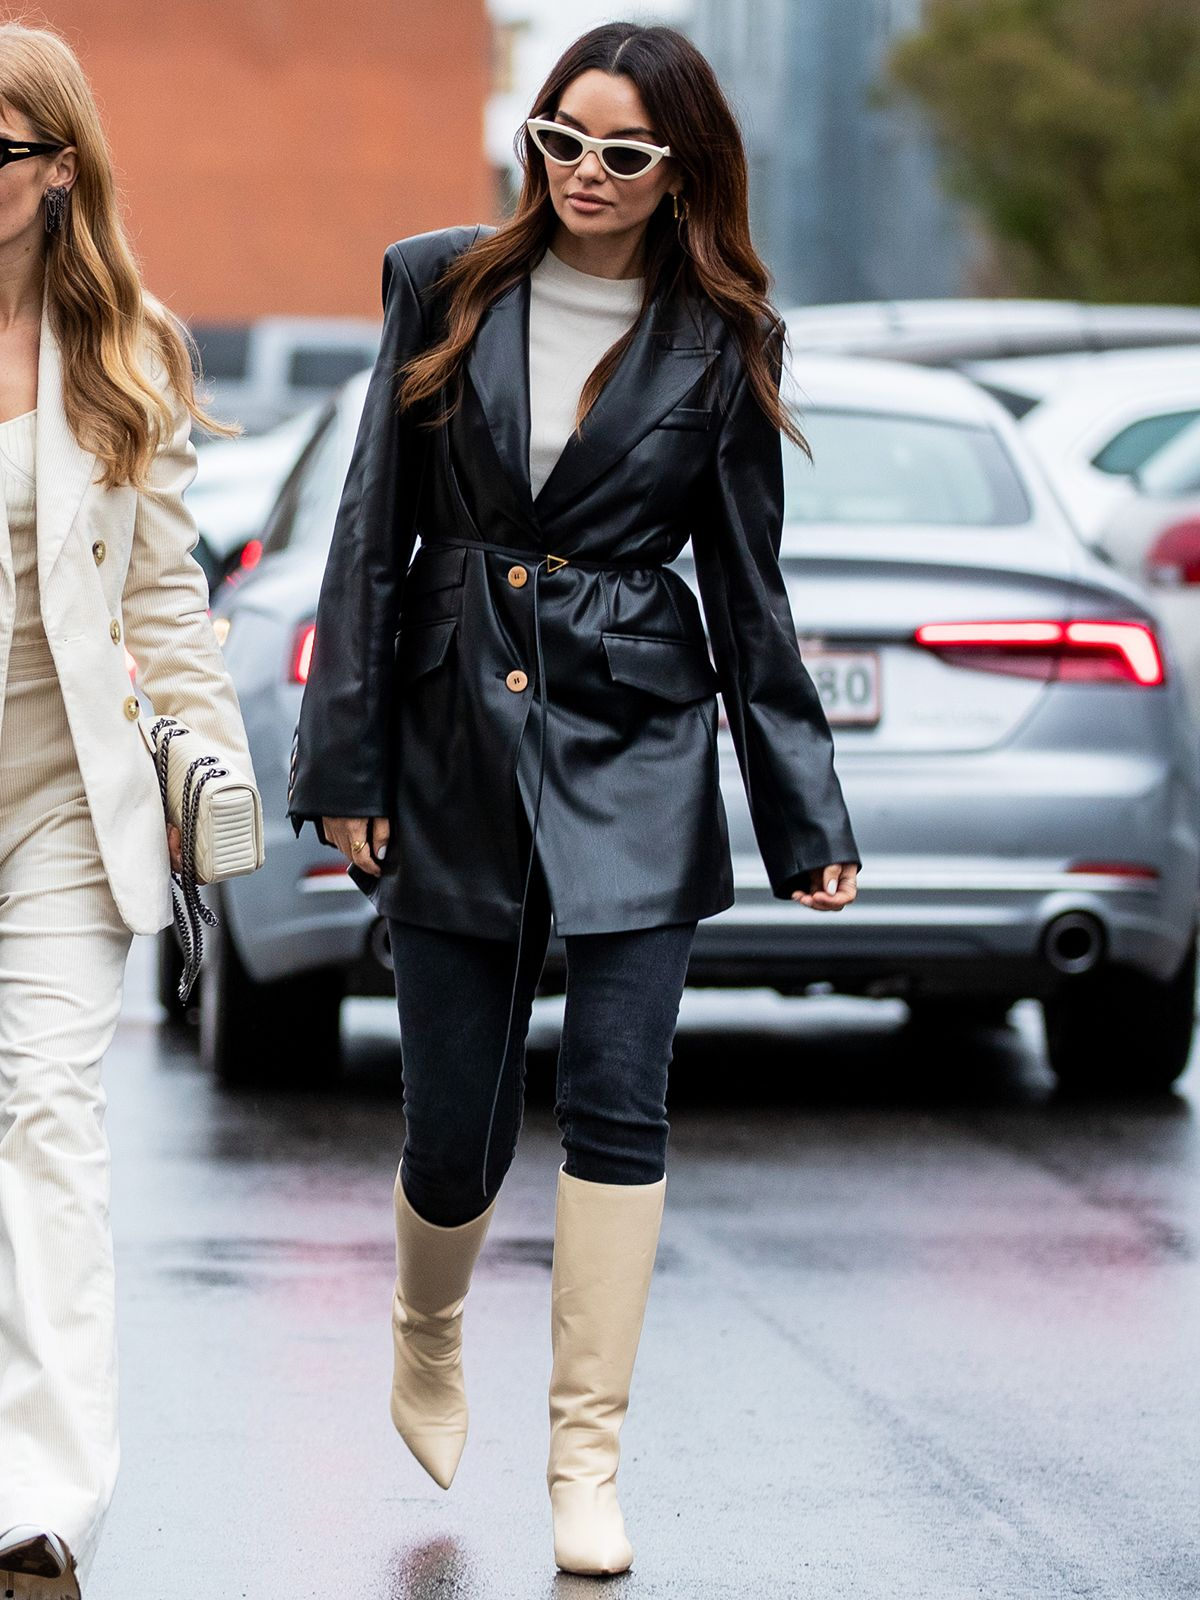 The 2020 Way to Wear a Leather Jacket